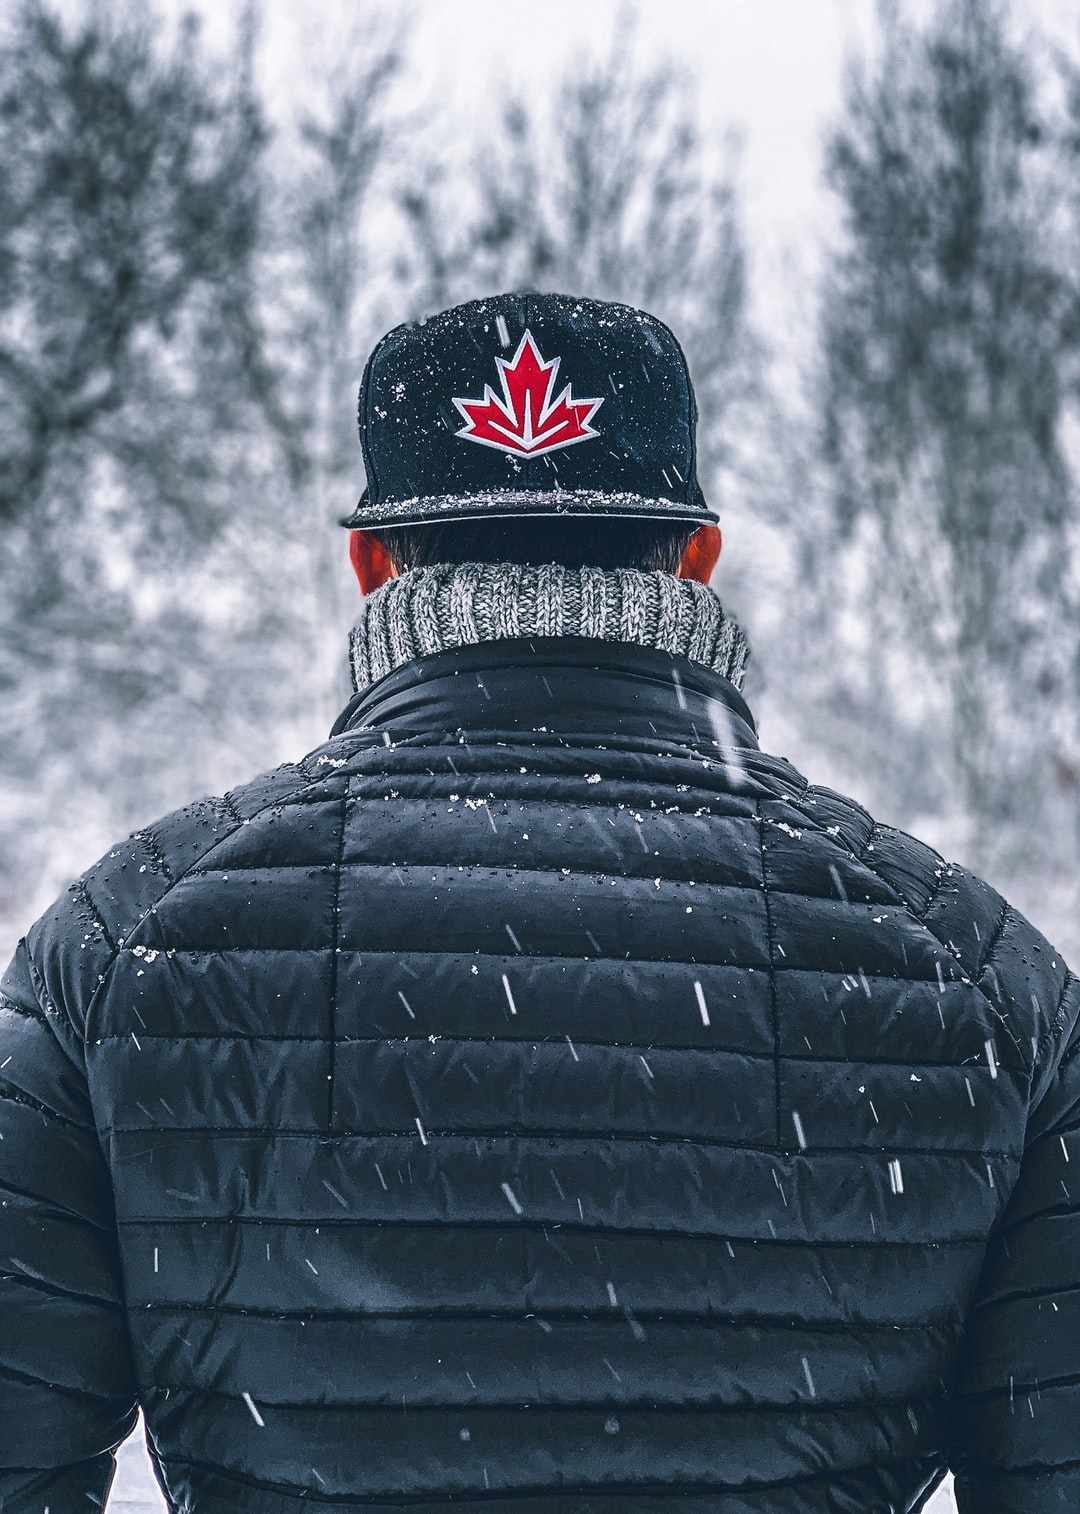 Canadian Maple Leaf in the Snow